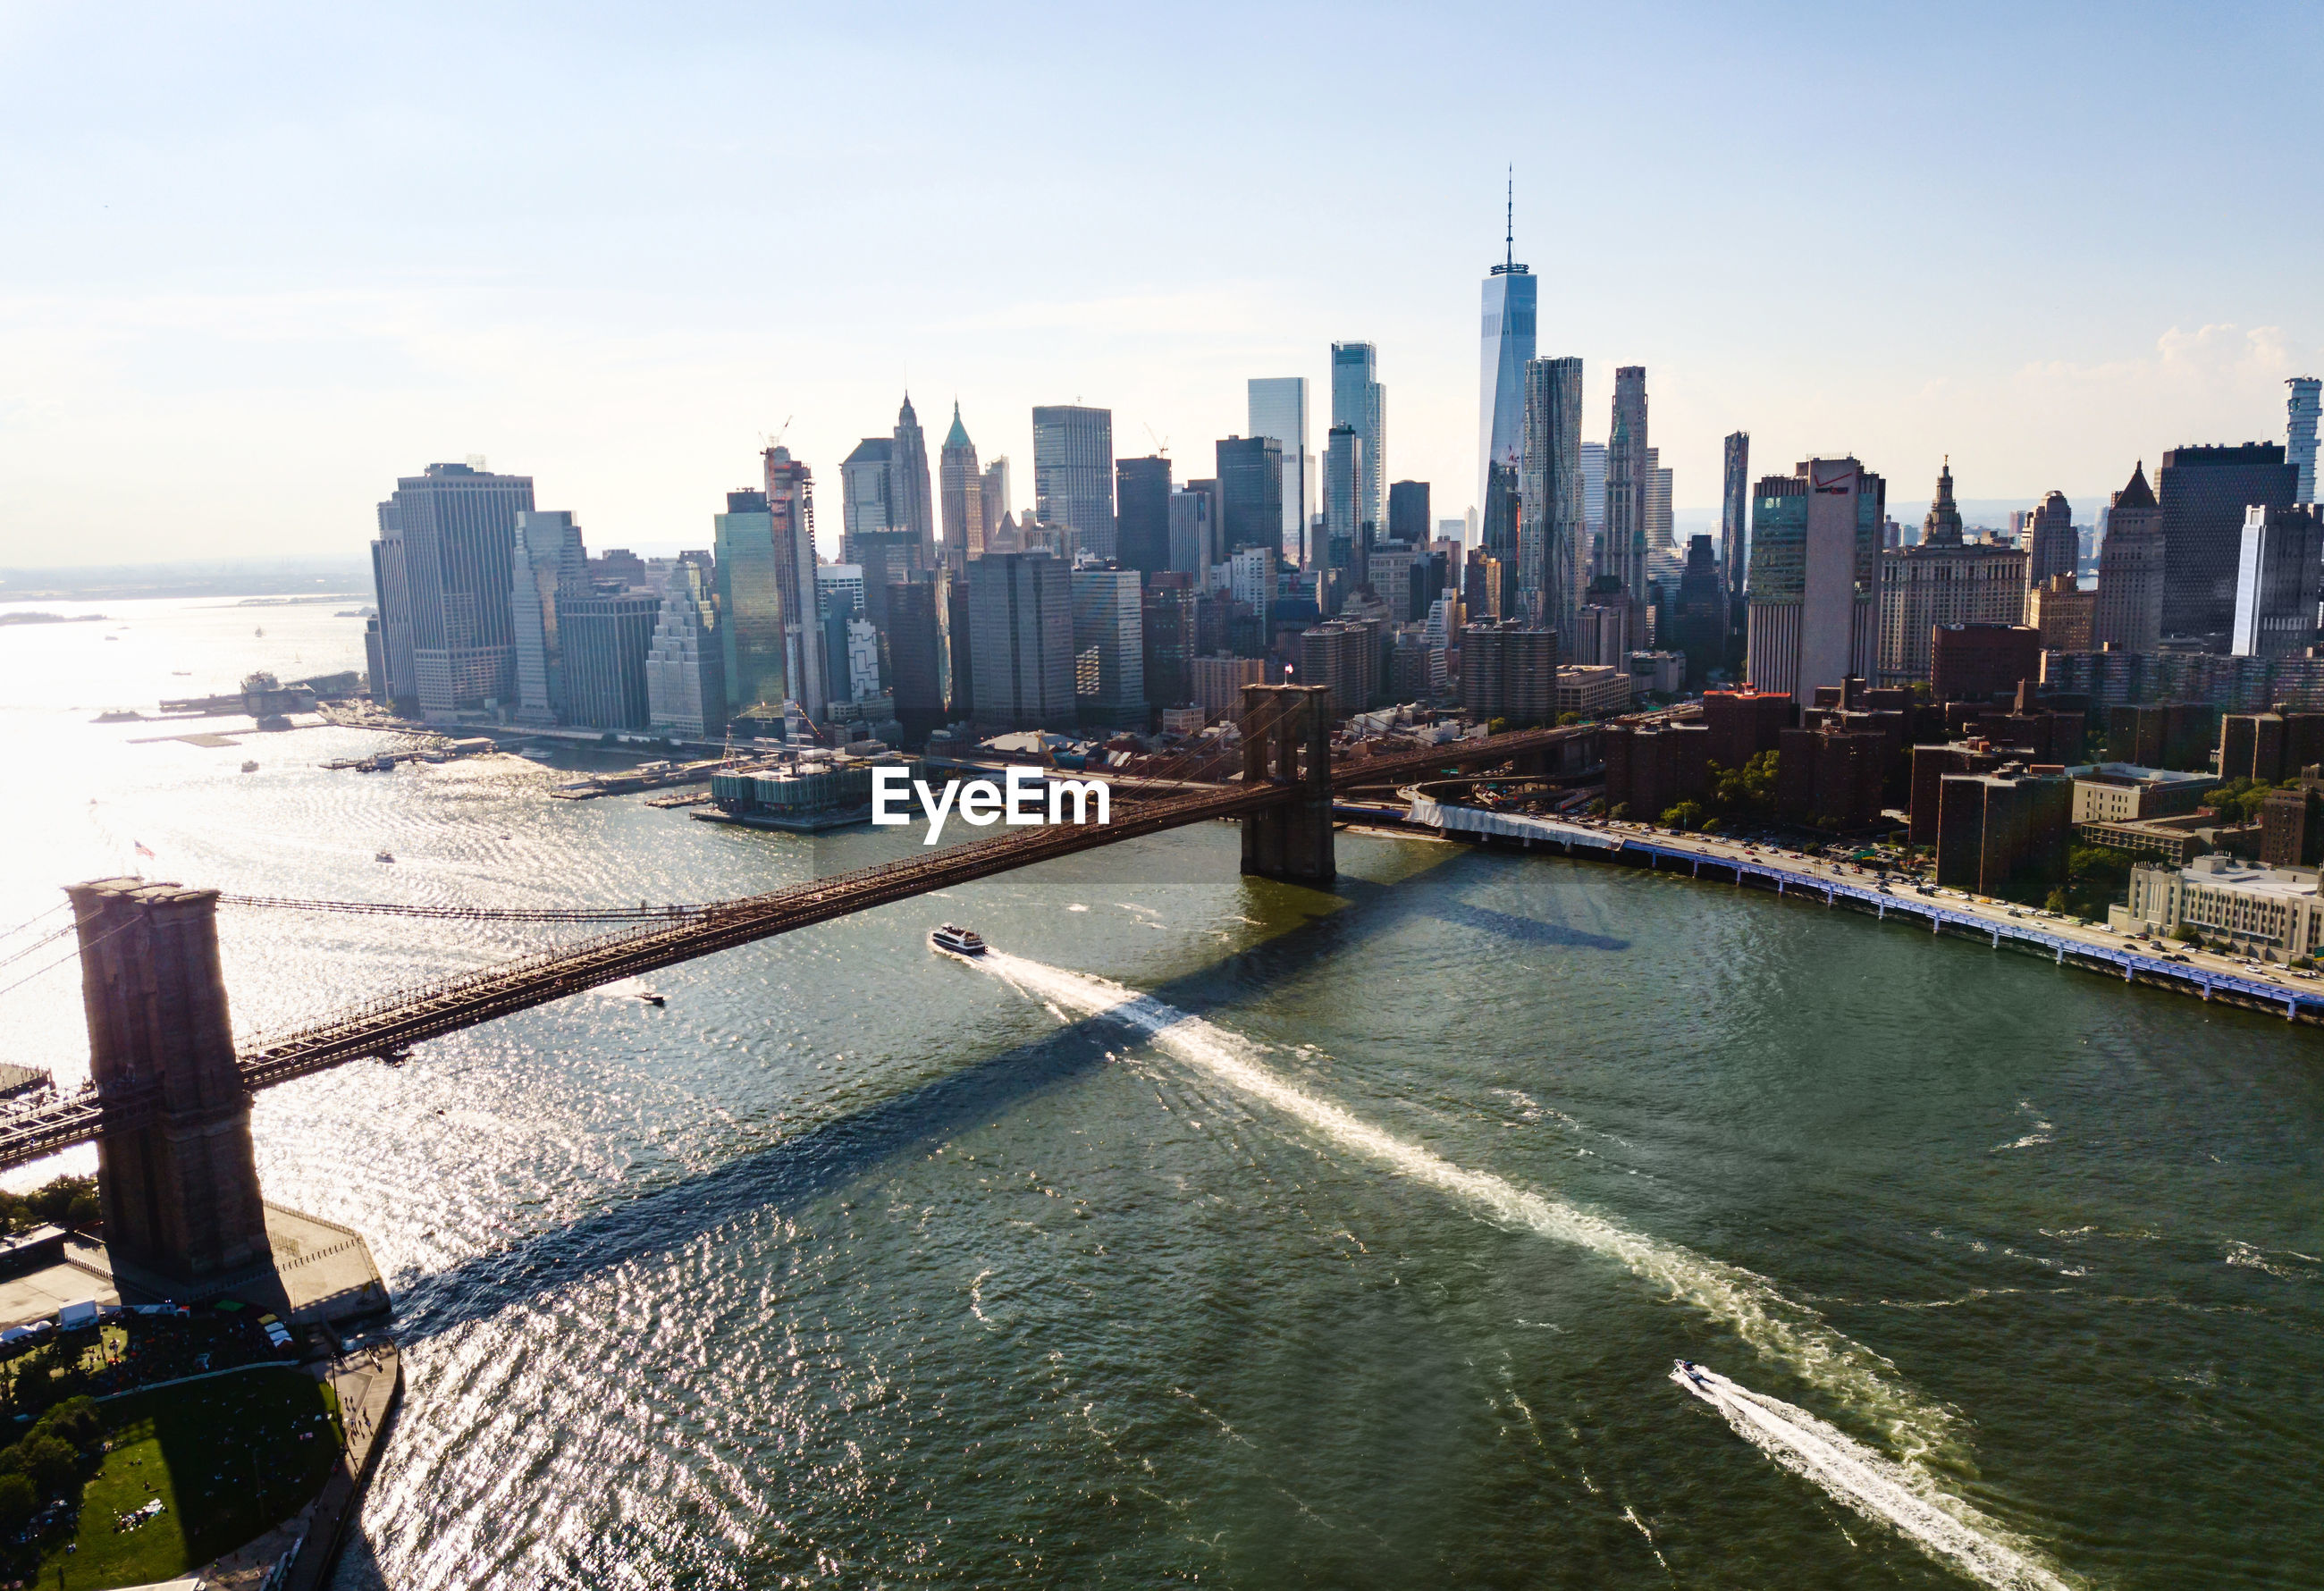 Aerial view of brooklyn bridge over river in city against sky